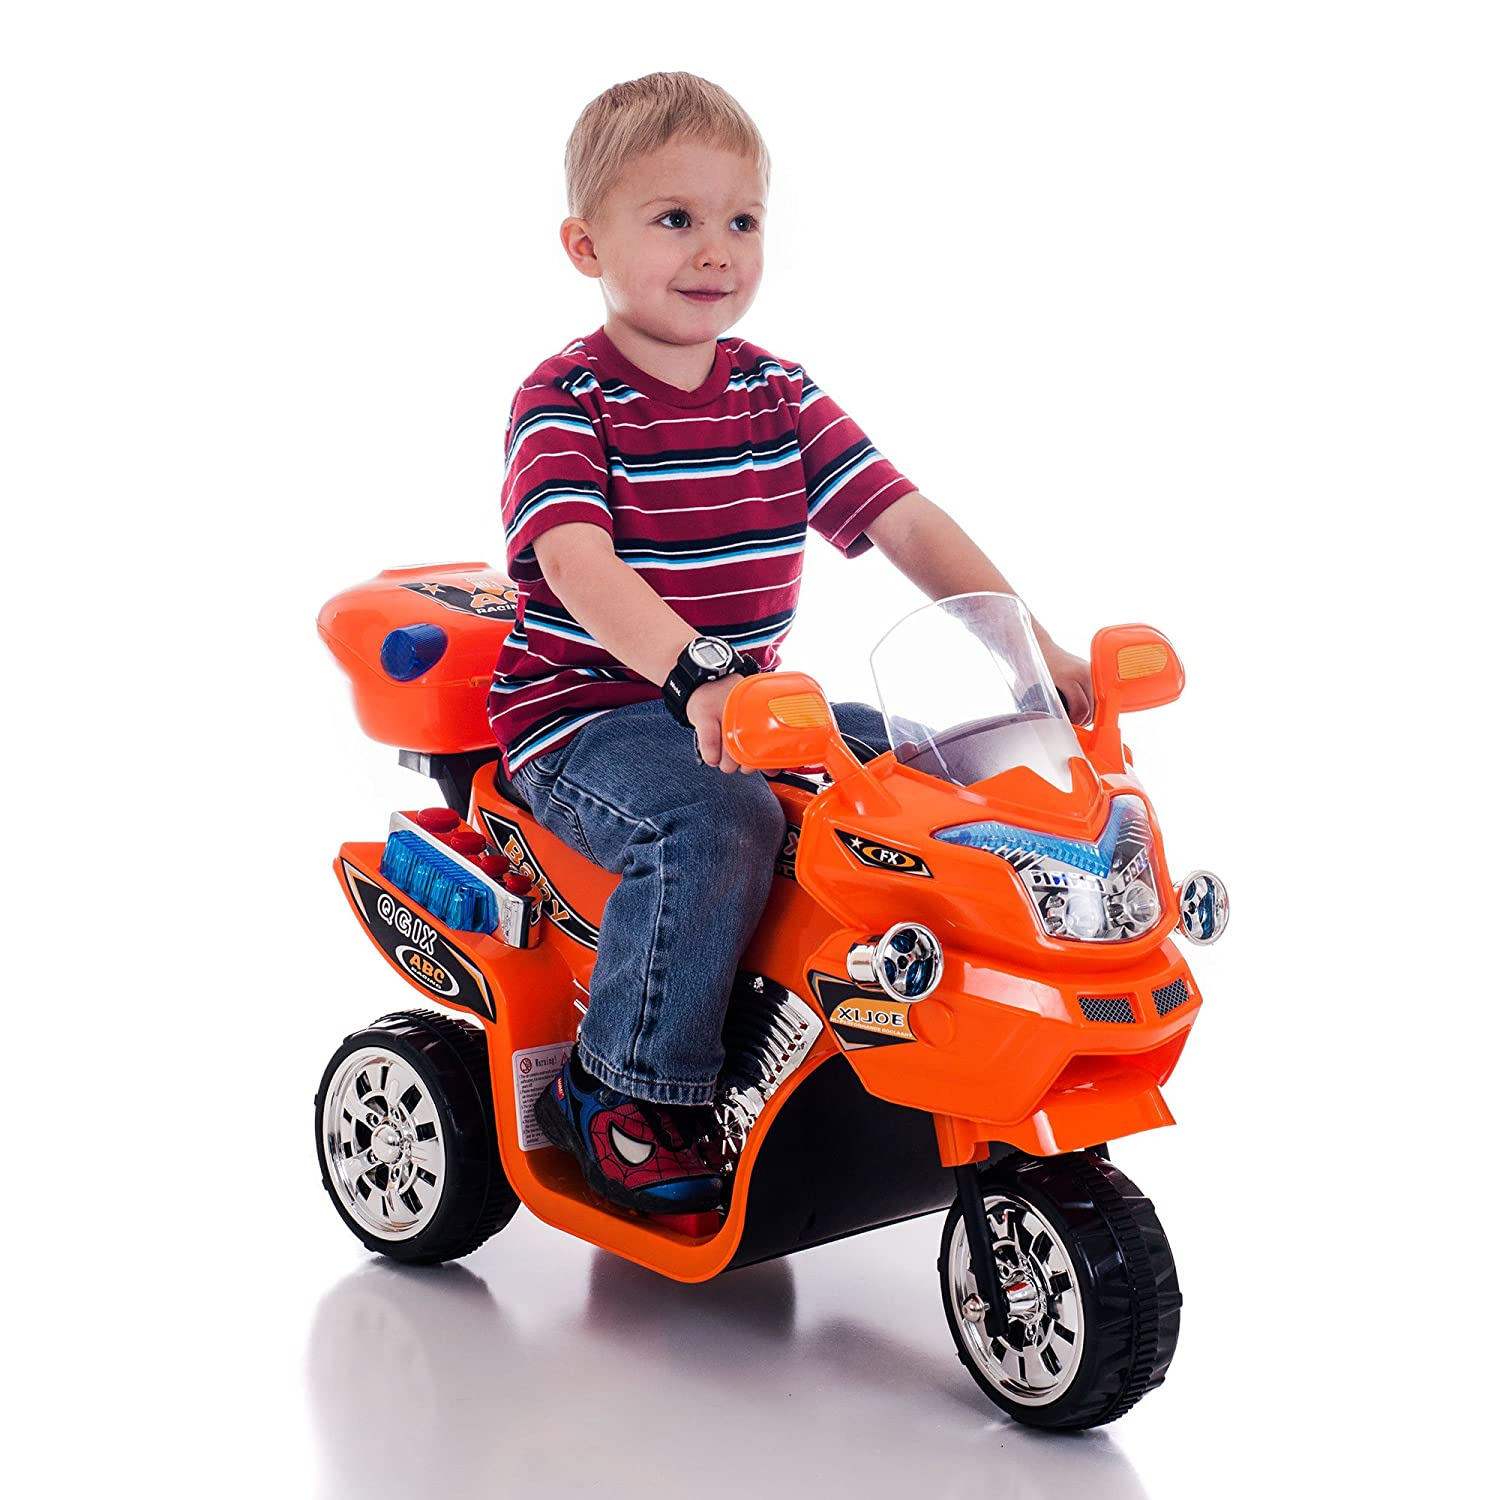 Motorcycle For Toddlers To Ride Pimp Up Motorcycle